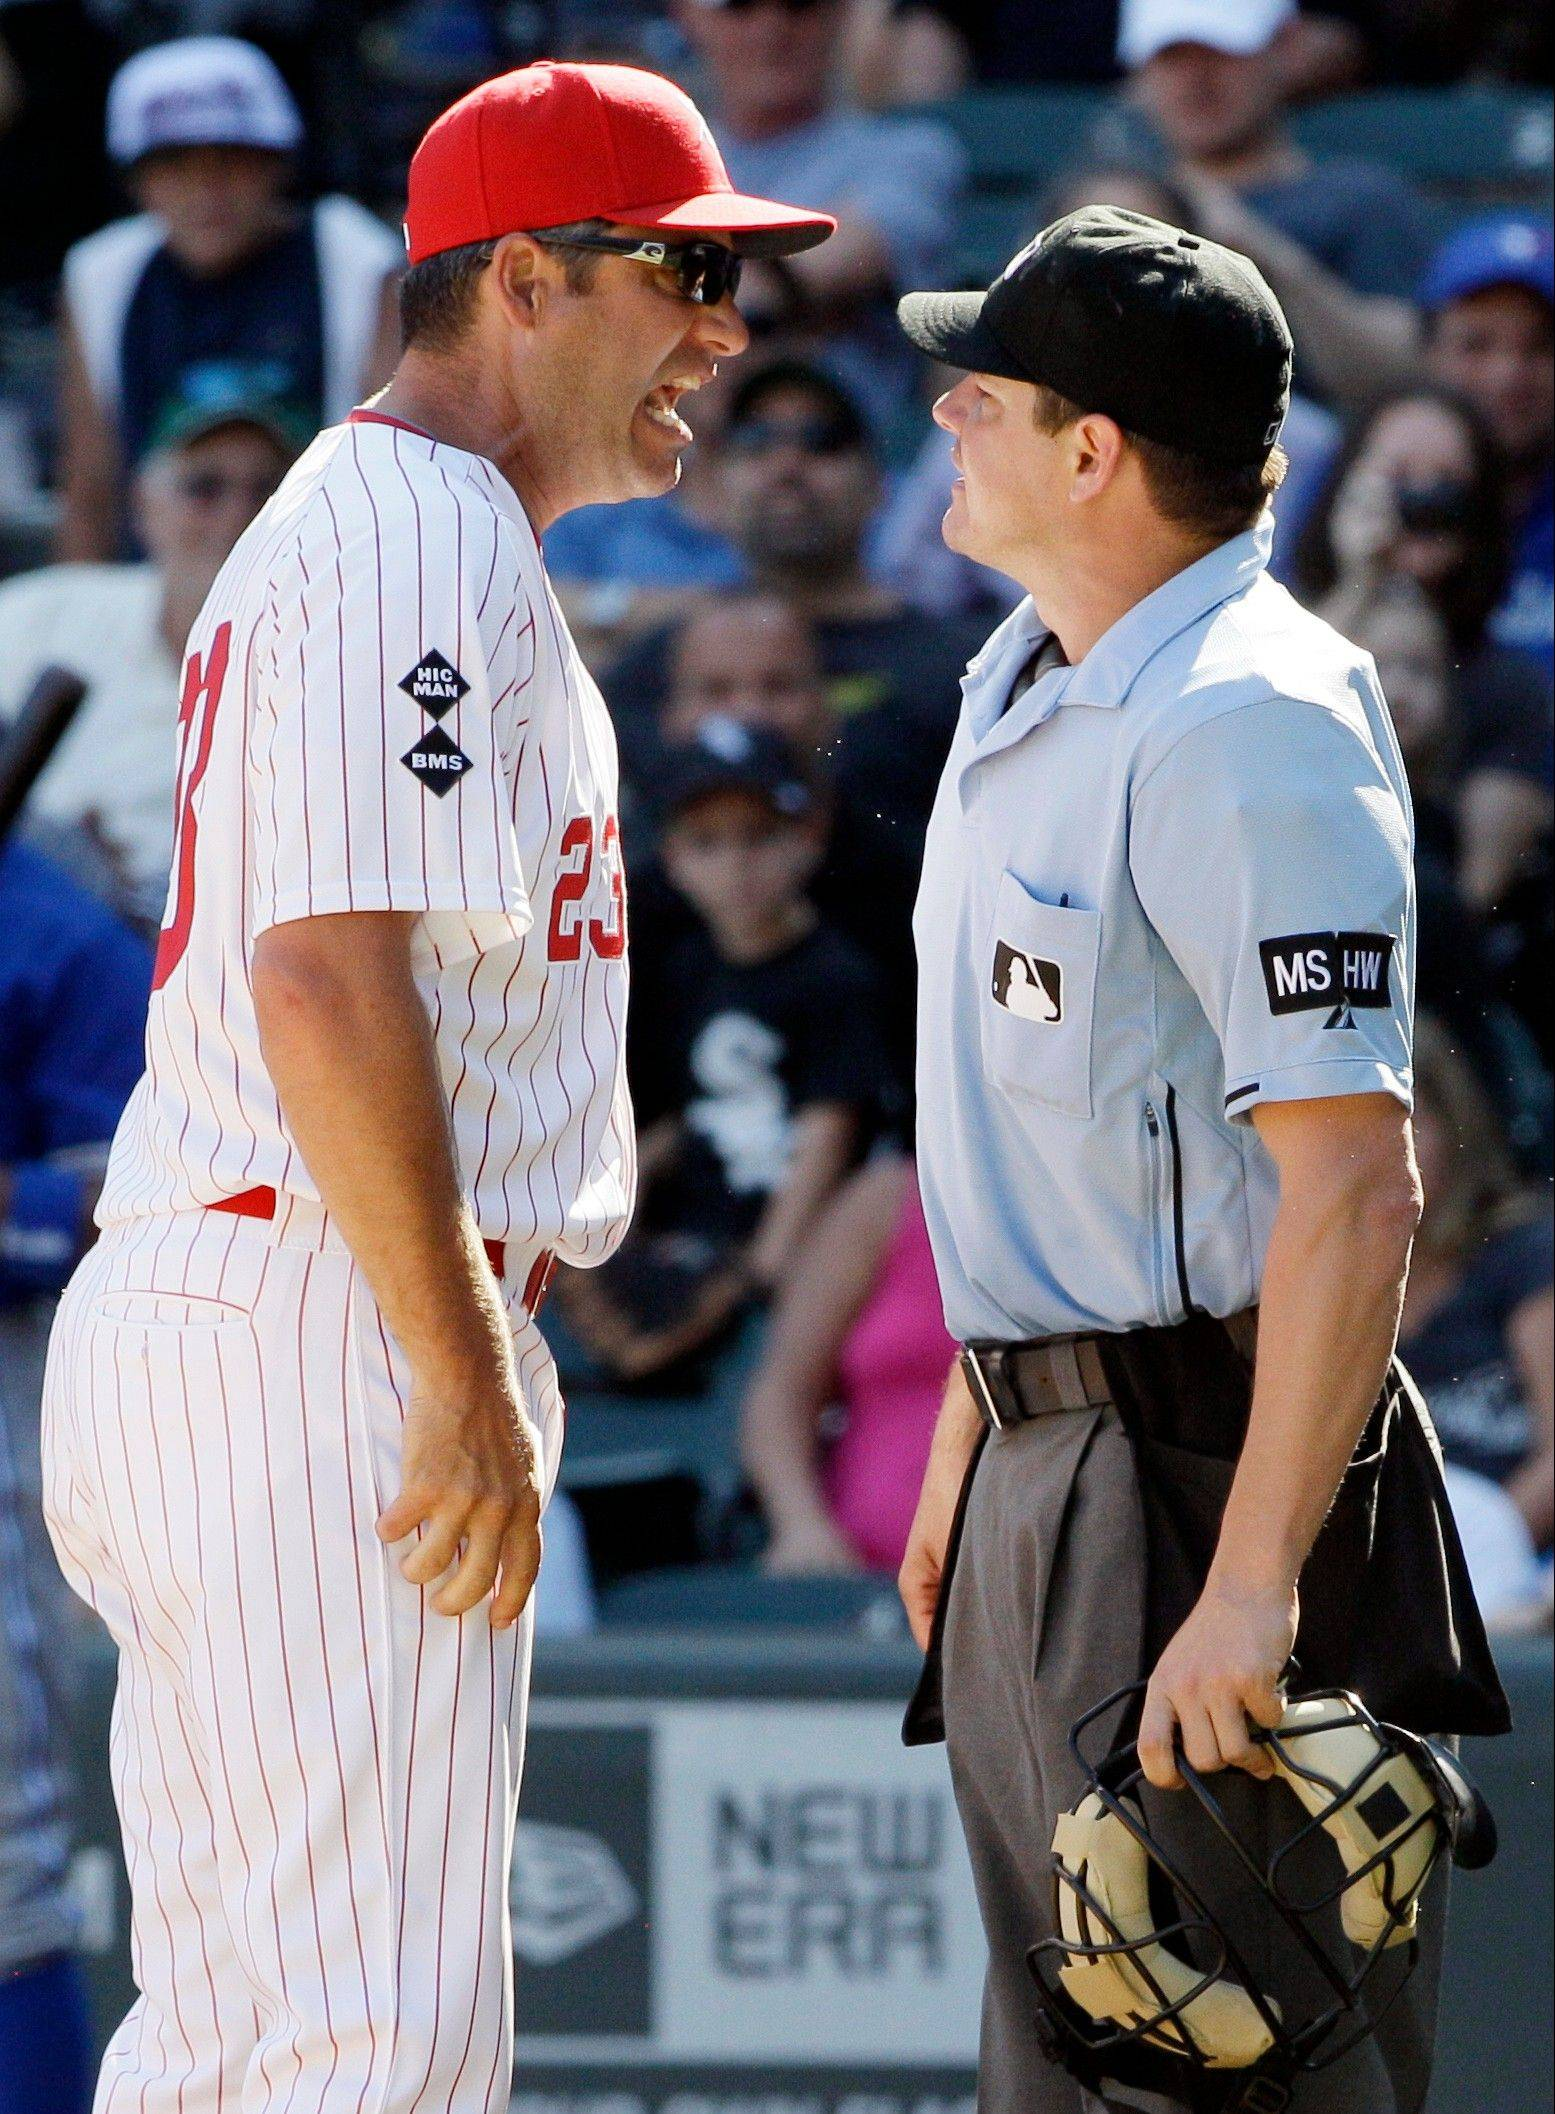 White Sox manager Robin Ventura is about to be ejected by home plate umpire D.J. Reyburn for arguing in the ninth inning Sunday at U.S. Cellular Field.